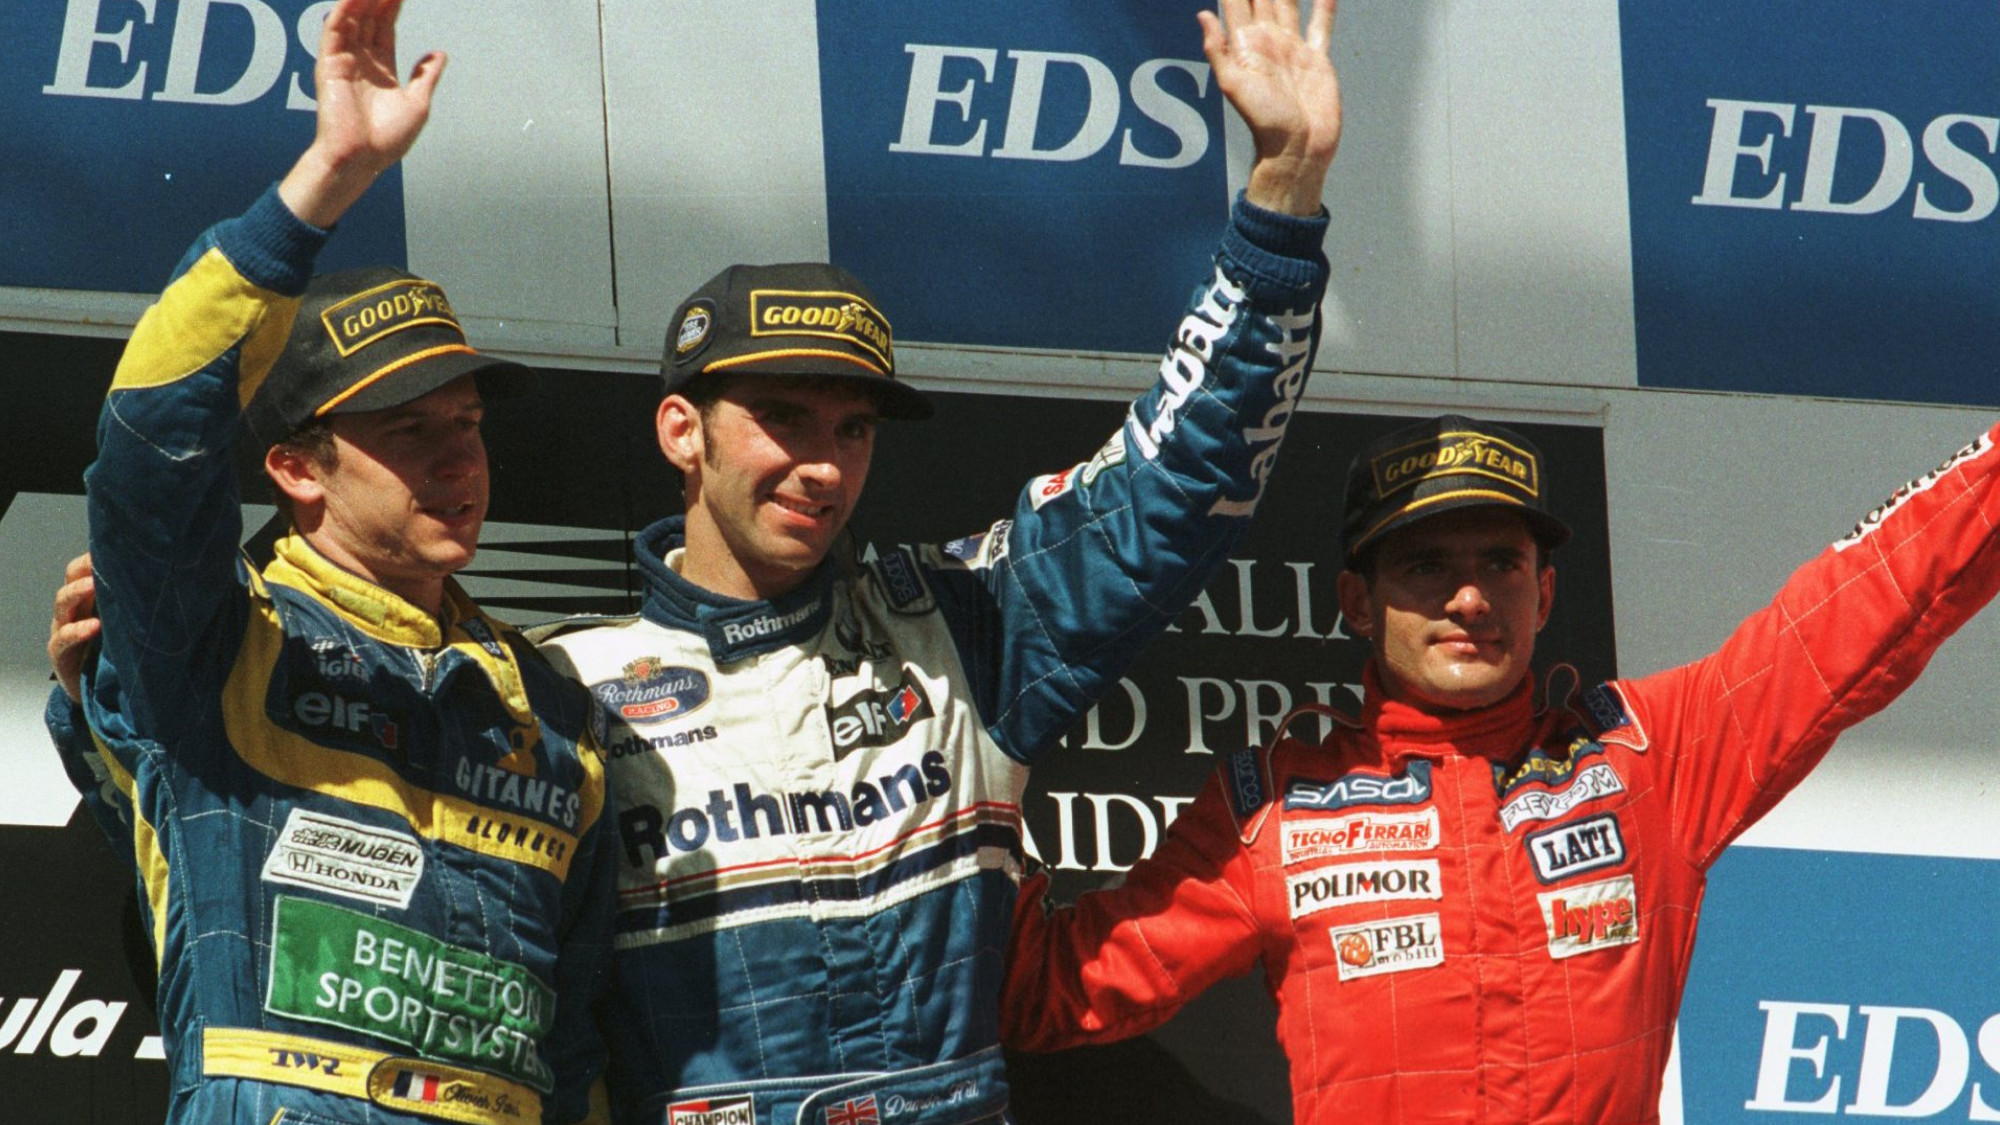 The final F1 race at Adelaide – Clive James' view of the '95 Australian GP